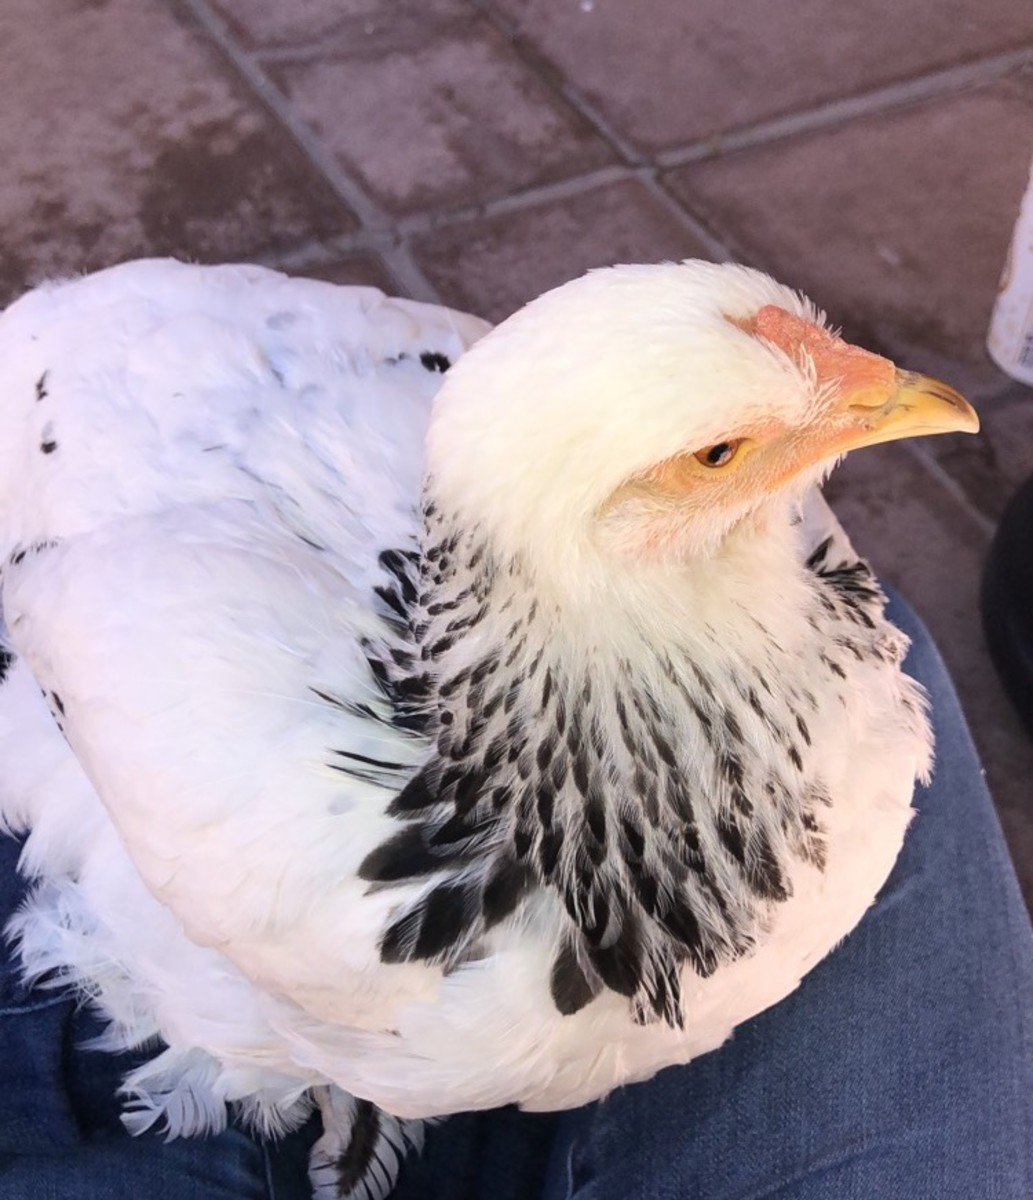 My own special needs chicken, Teba, enjoys her cuddles and pampered life.